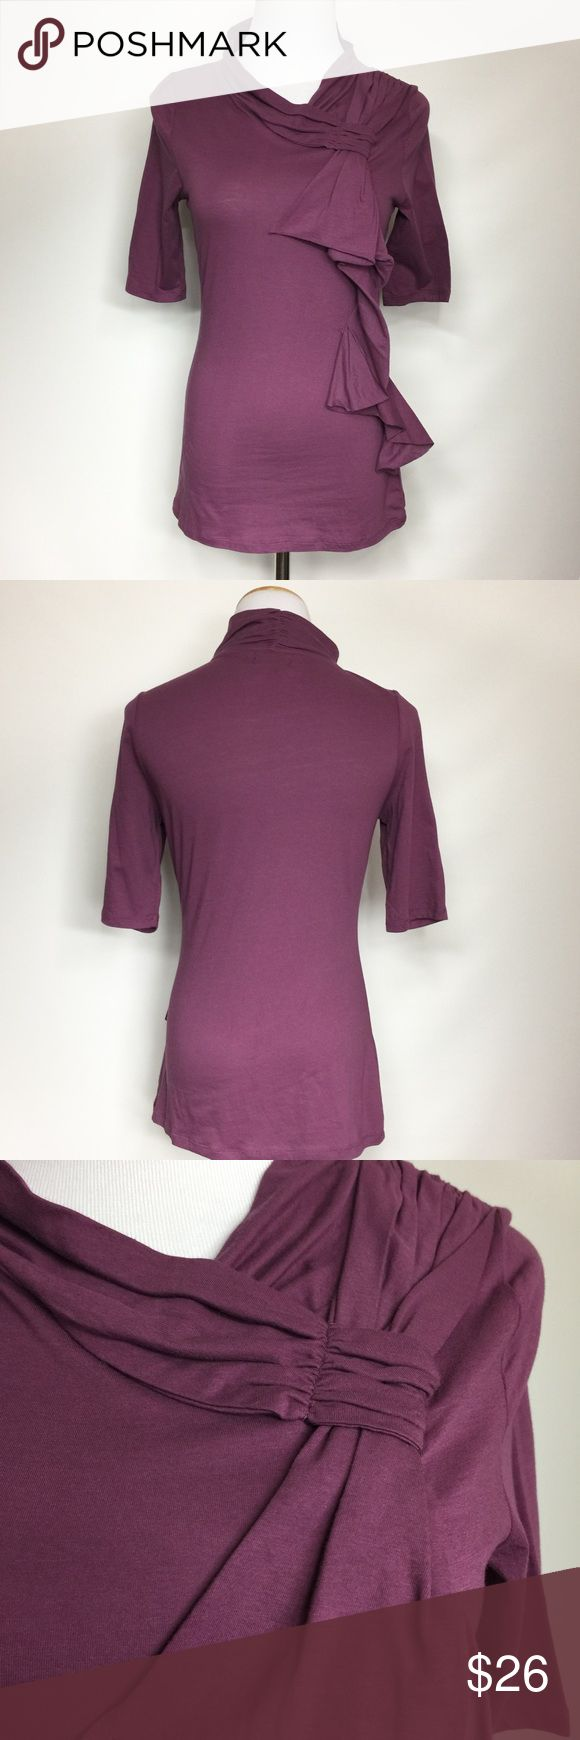 DELETTA BY ANTHROPOLOGIE PURPLE TOP Exc used condition. Anthropologie Tops Tees - Short Sleeve